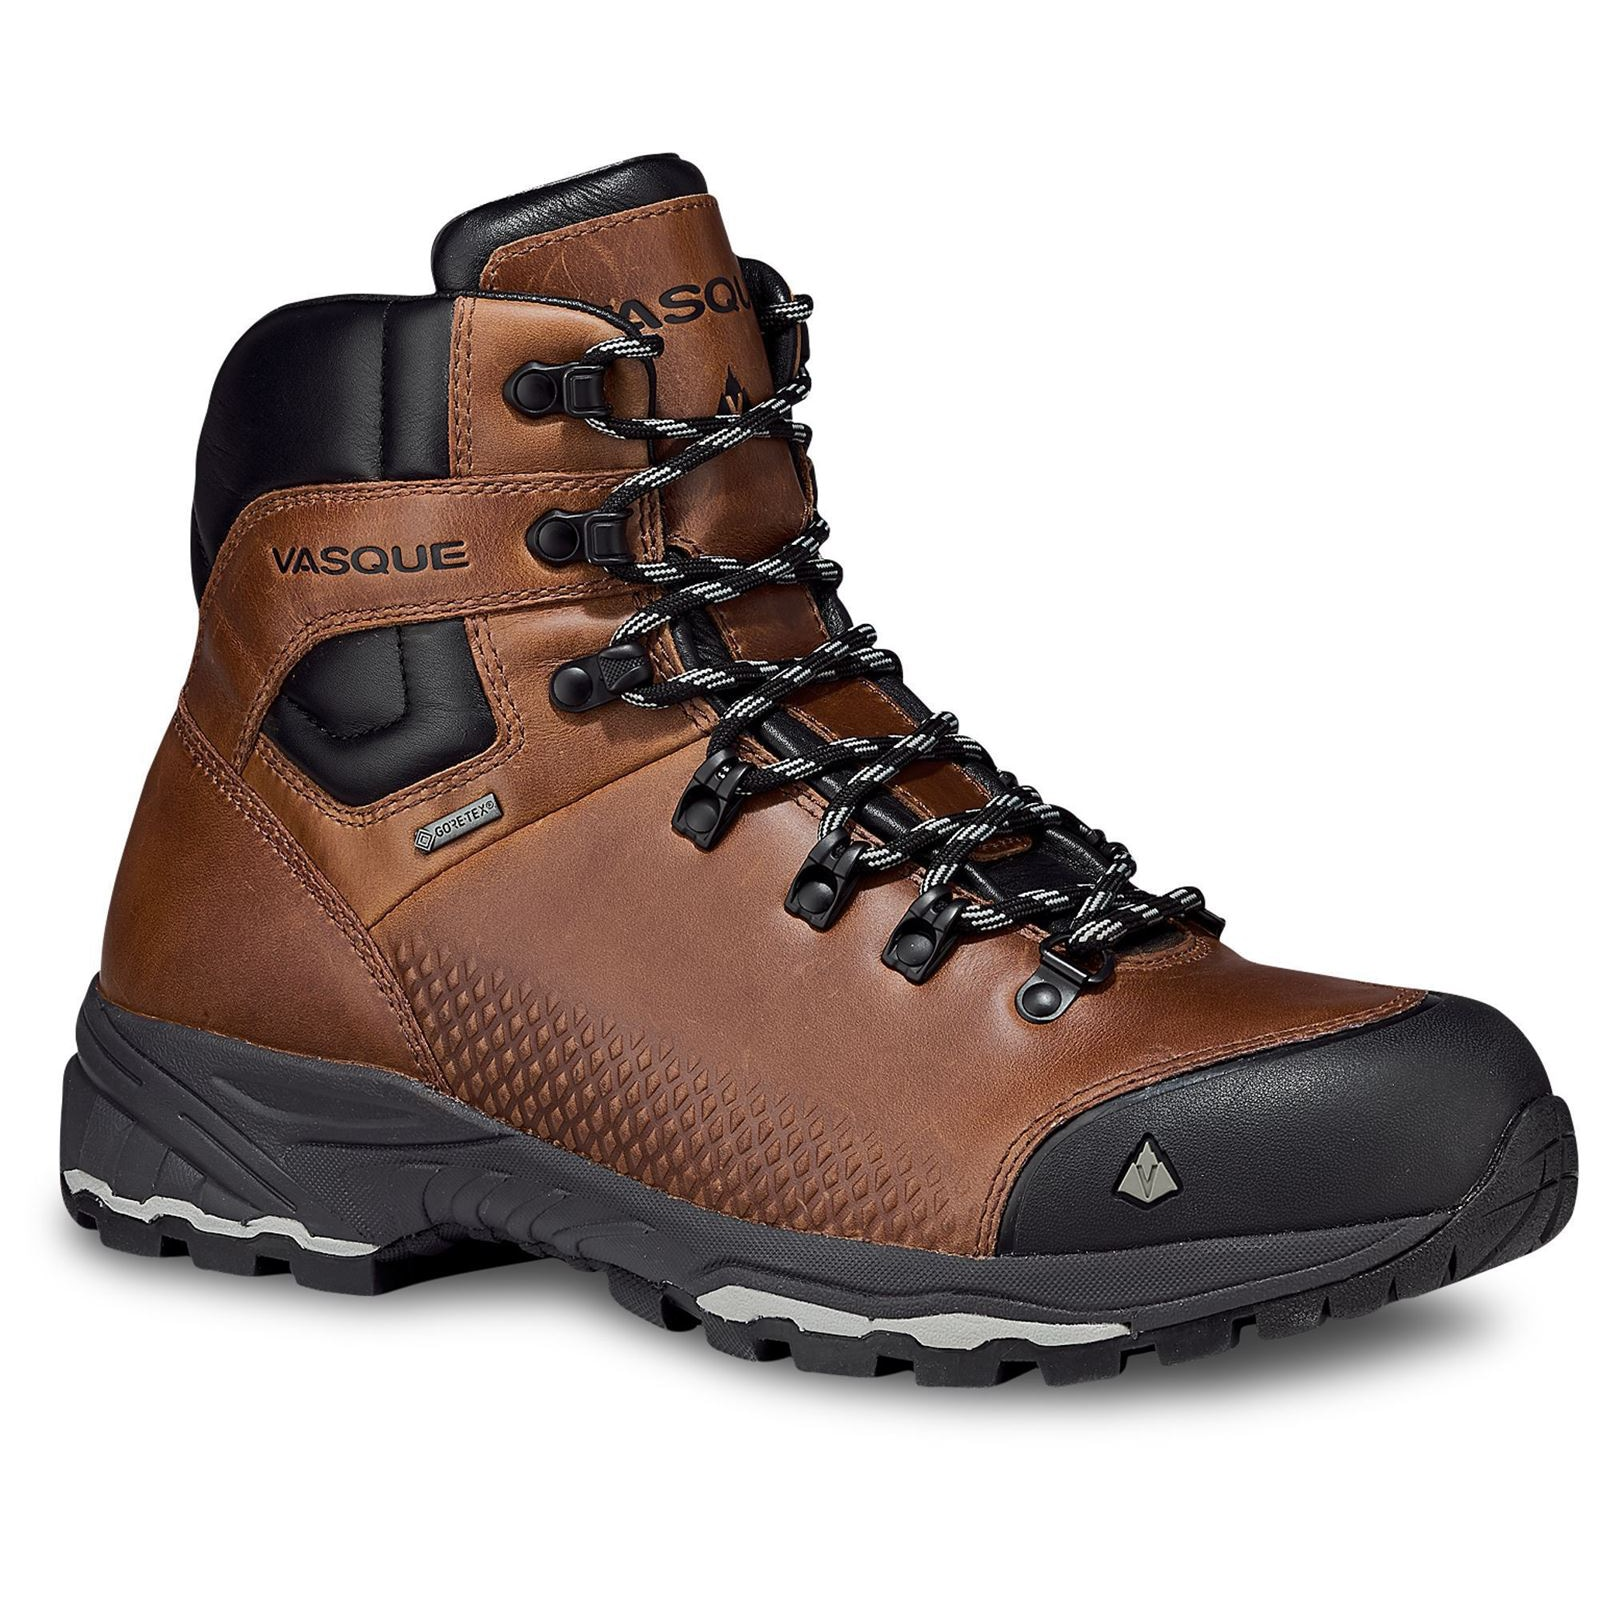 St Elias FG GTX Boot - Men's